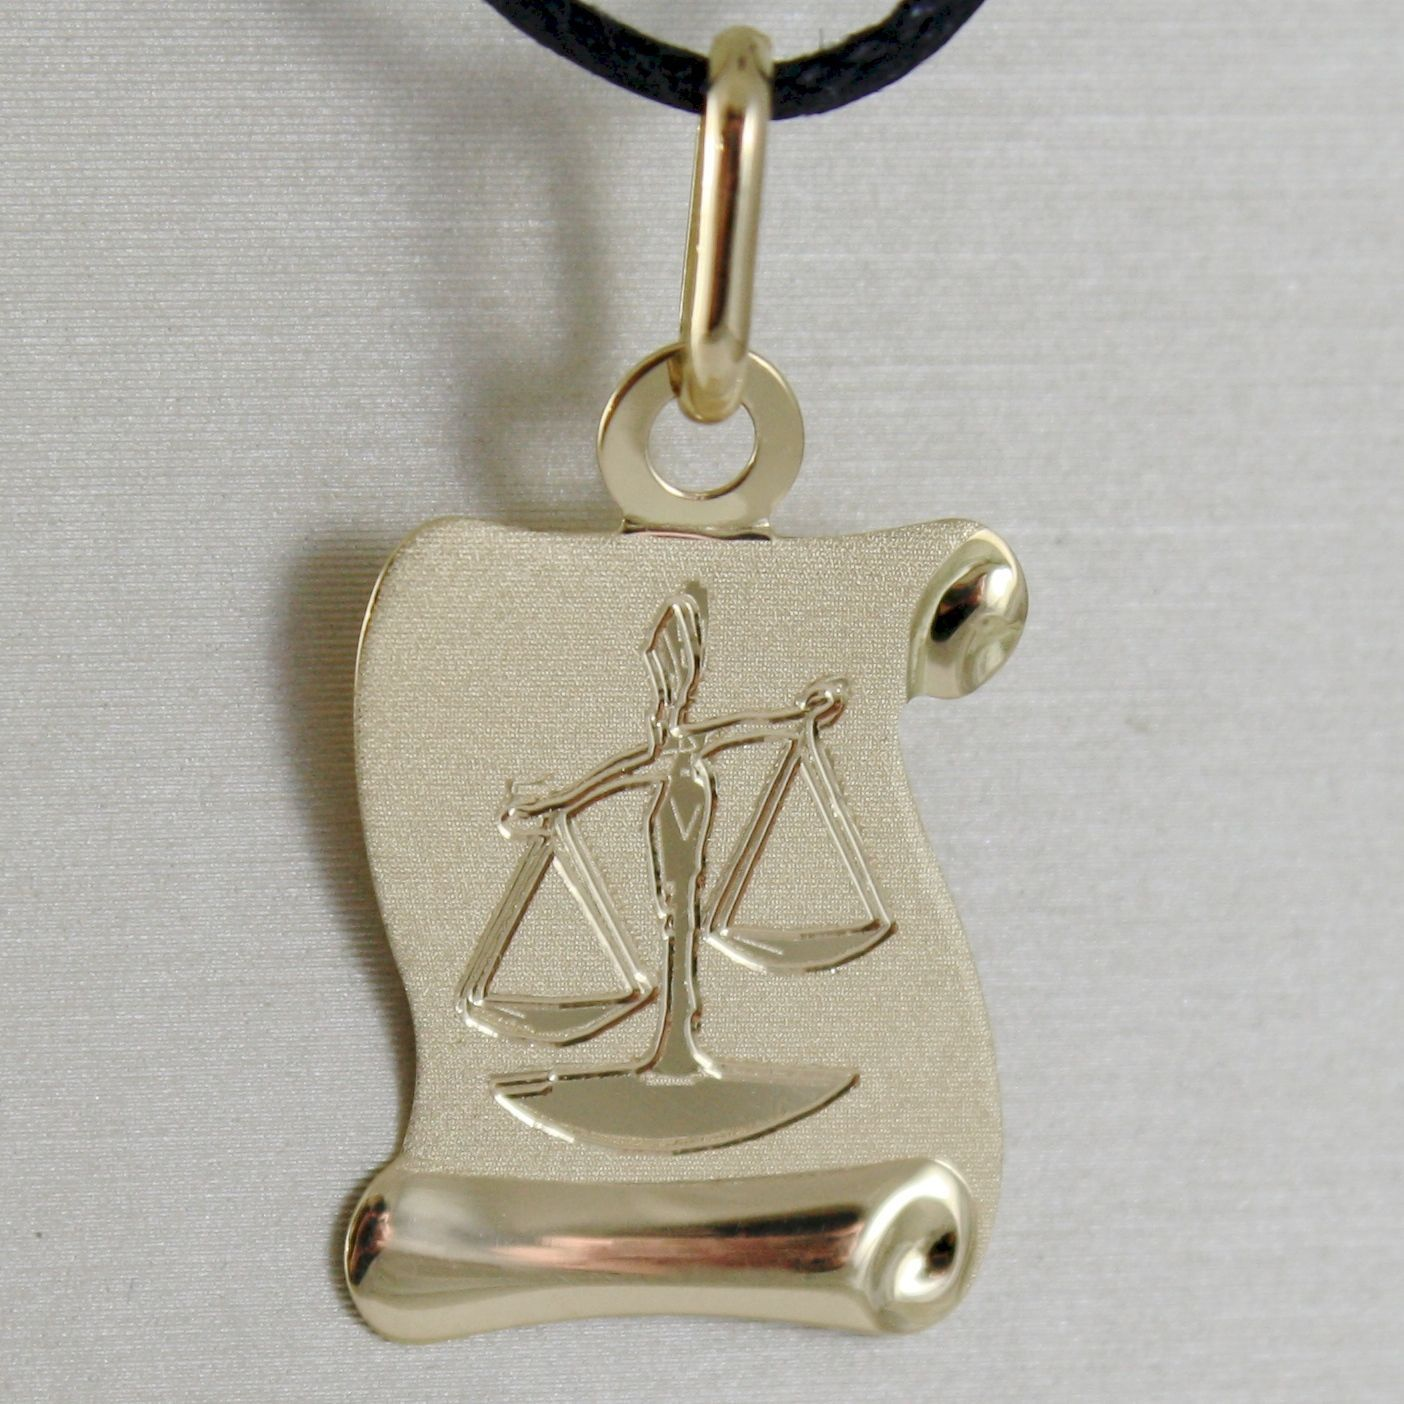 18K YELLOW GOLD ZODIAC SIGN MEDAL, LIBRA, PARCHMENT ENGRAVABLE MADE IN ITALY